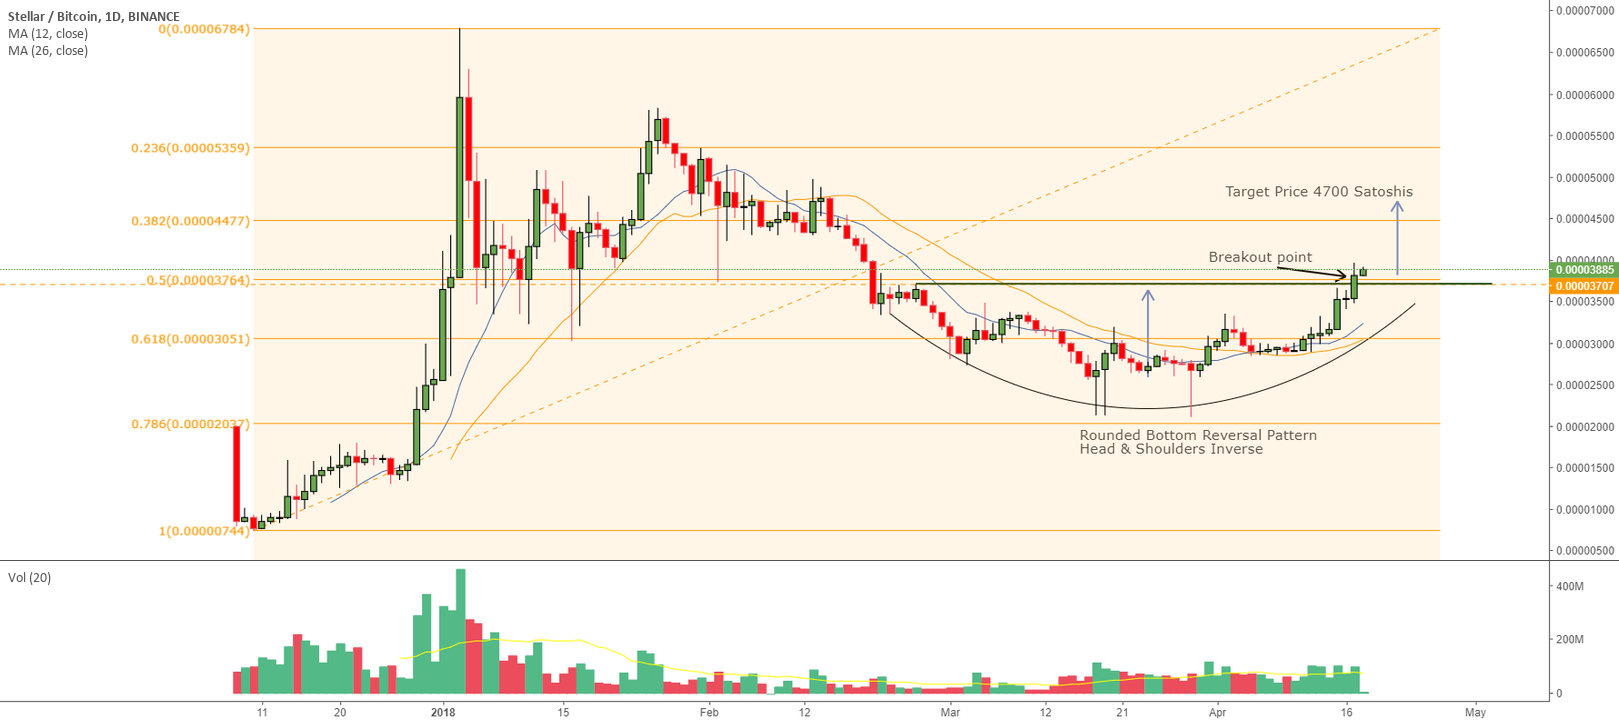 XLMBTC STELLAR BREAKOUT COMPLETE  ROUNDED BOTTOM HEAD SHOULDERS